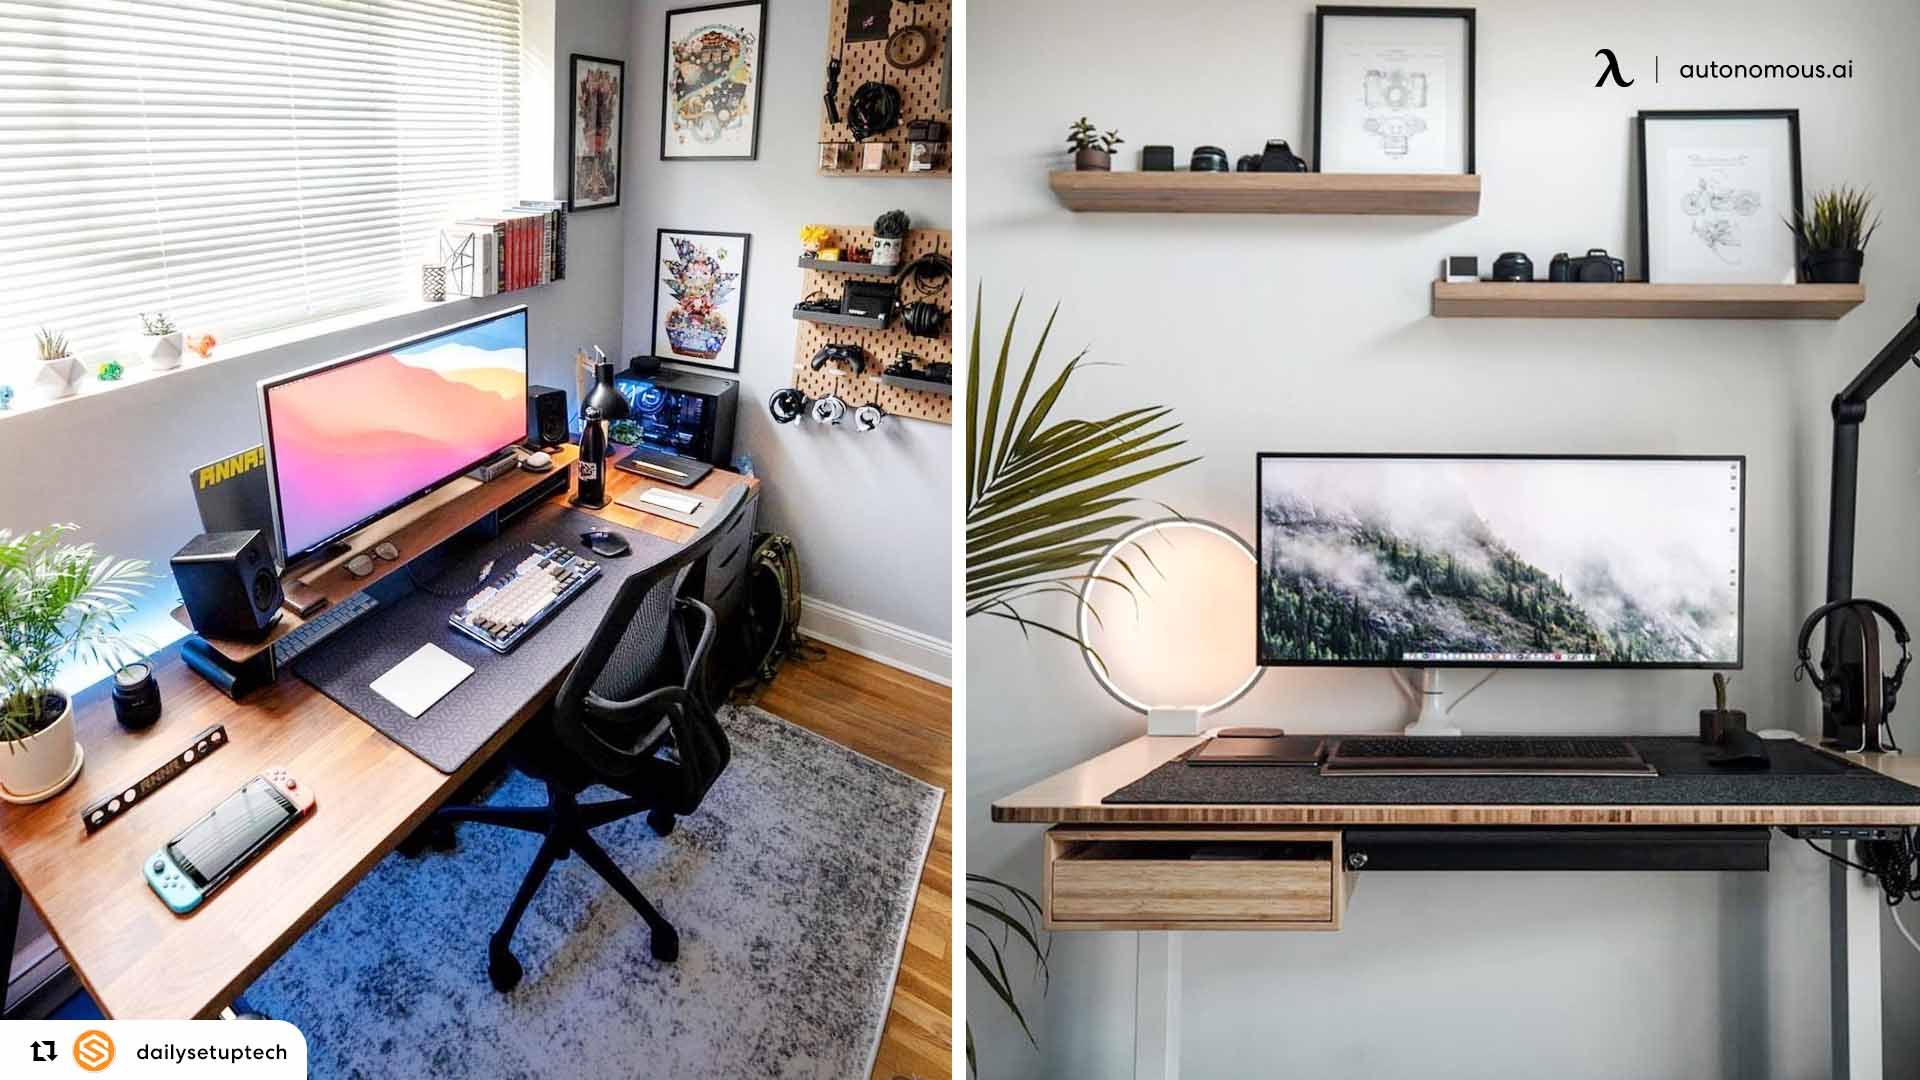 Finding The Best Home Office Workspace